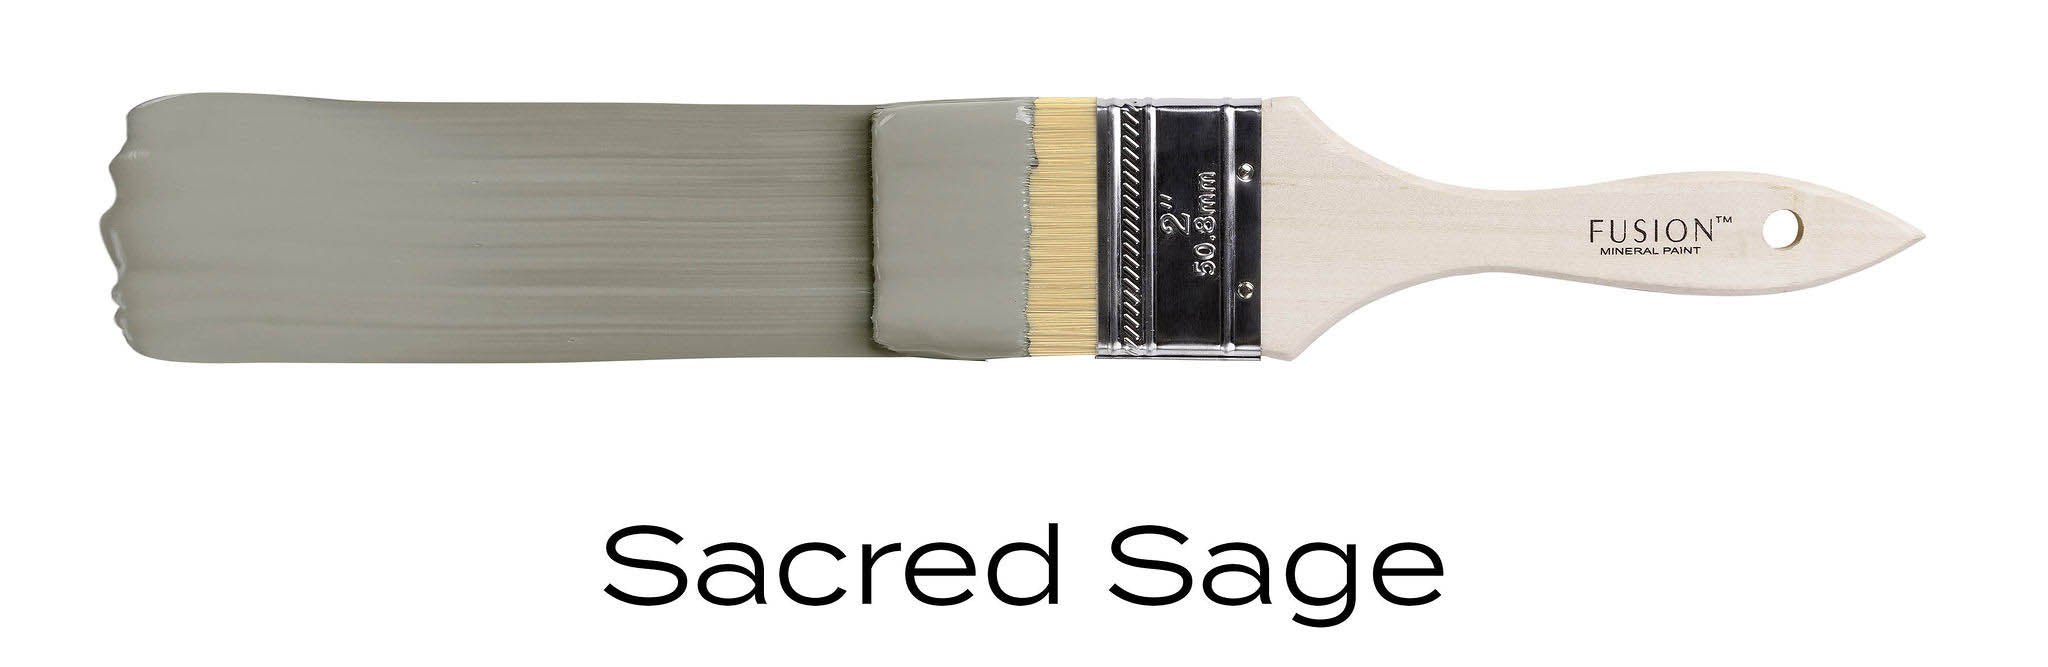 sacred sage furniture paint by fusion mineral paint